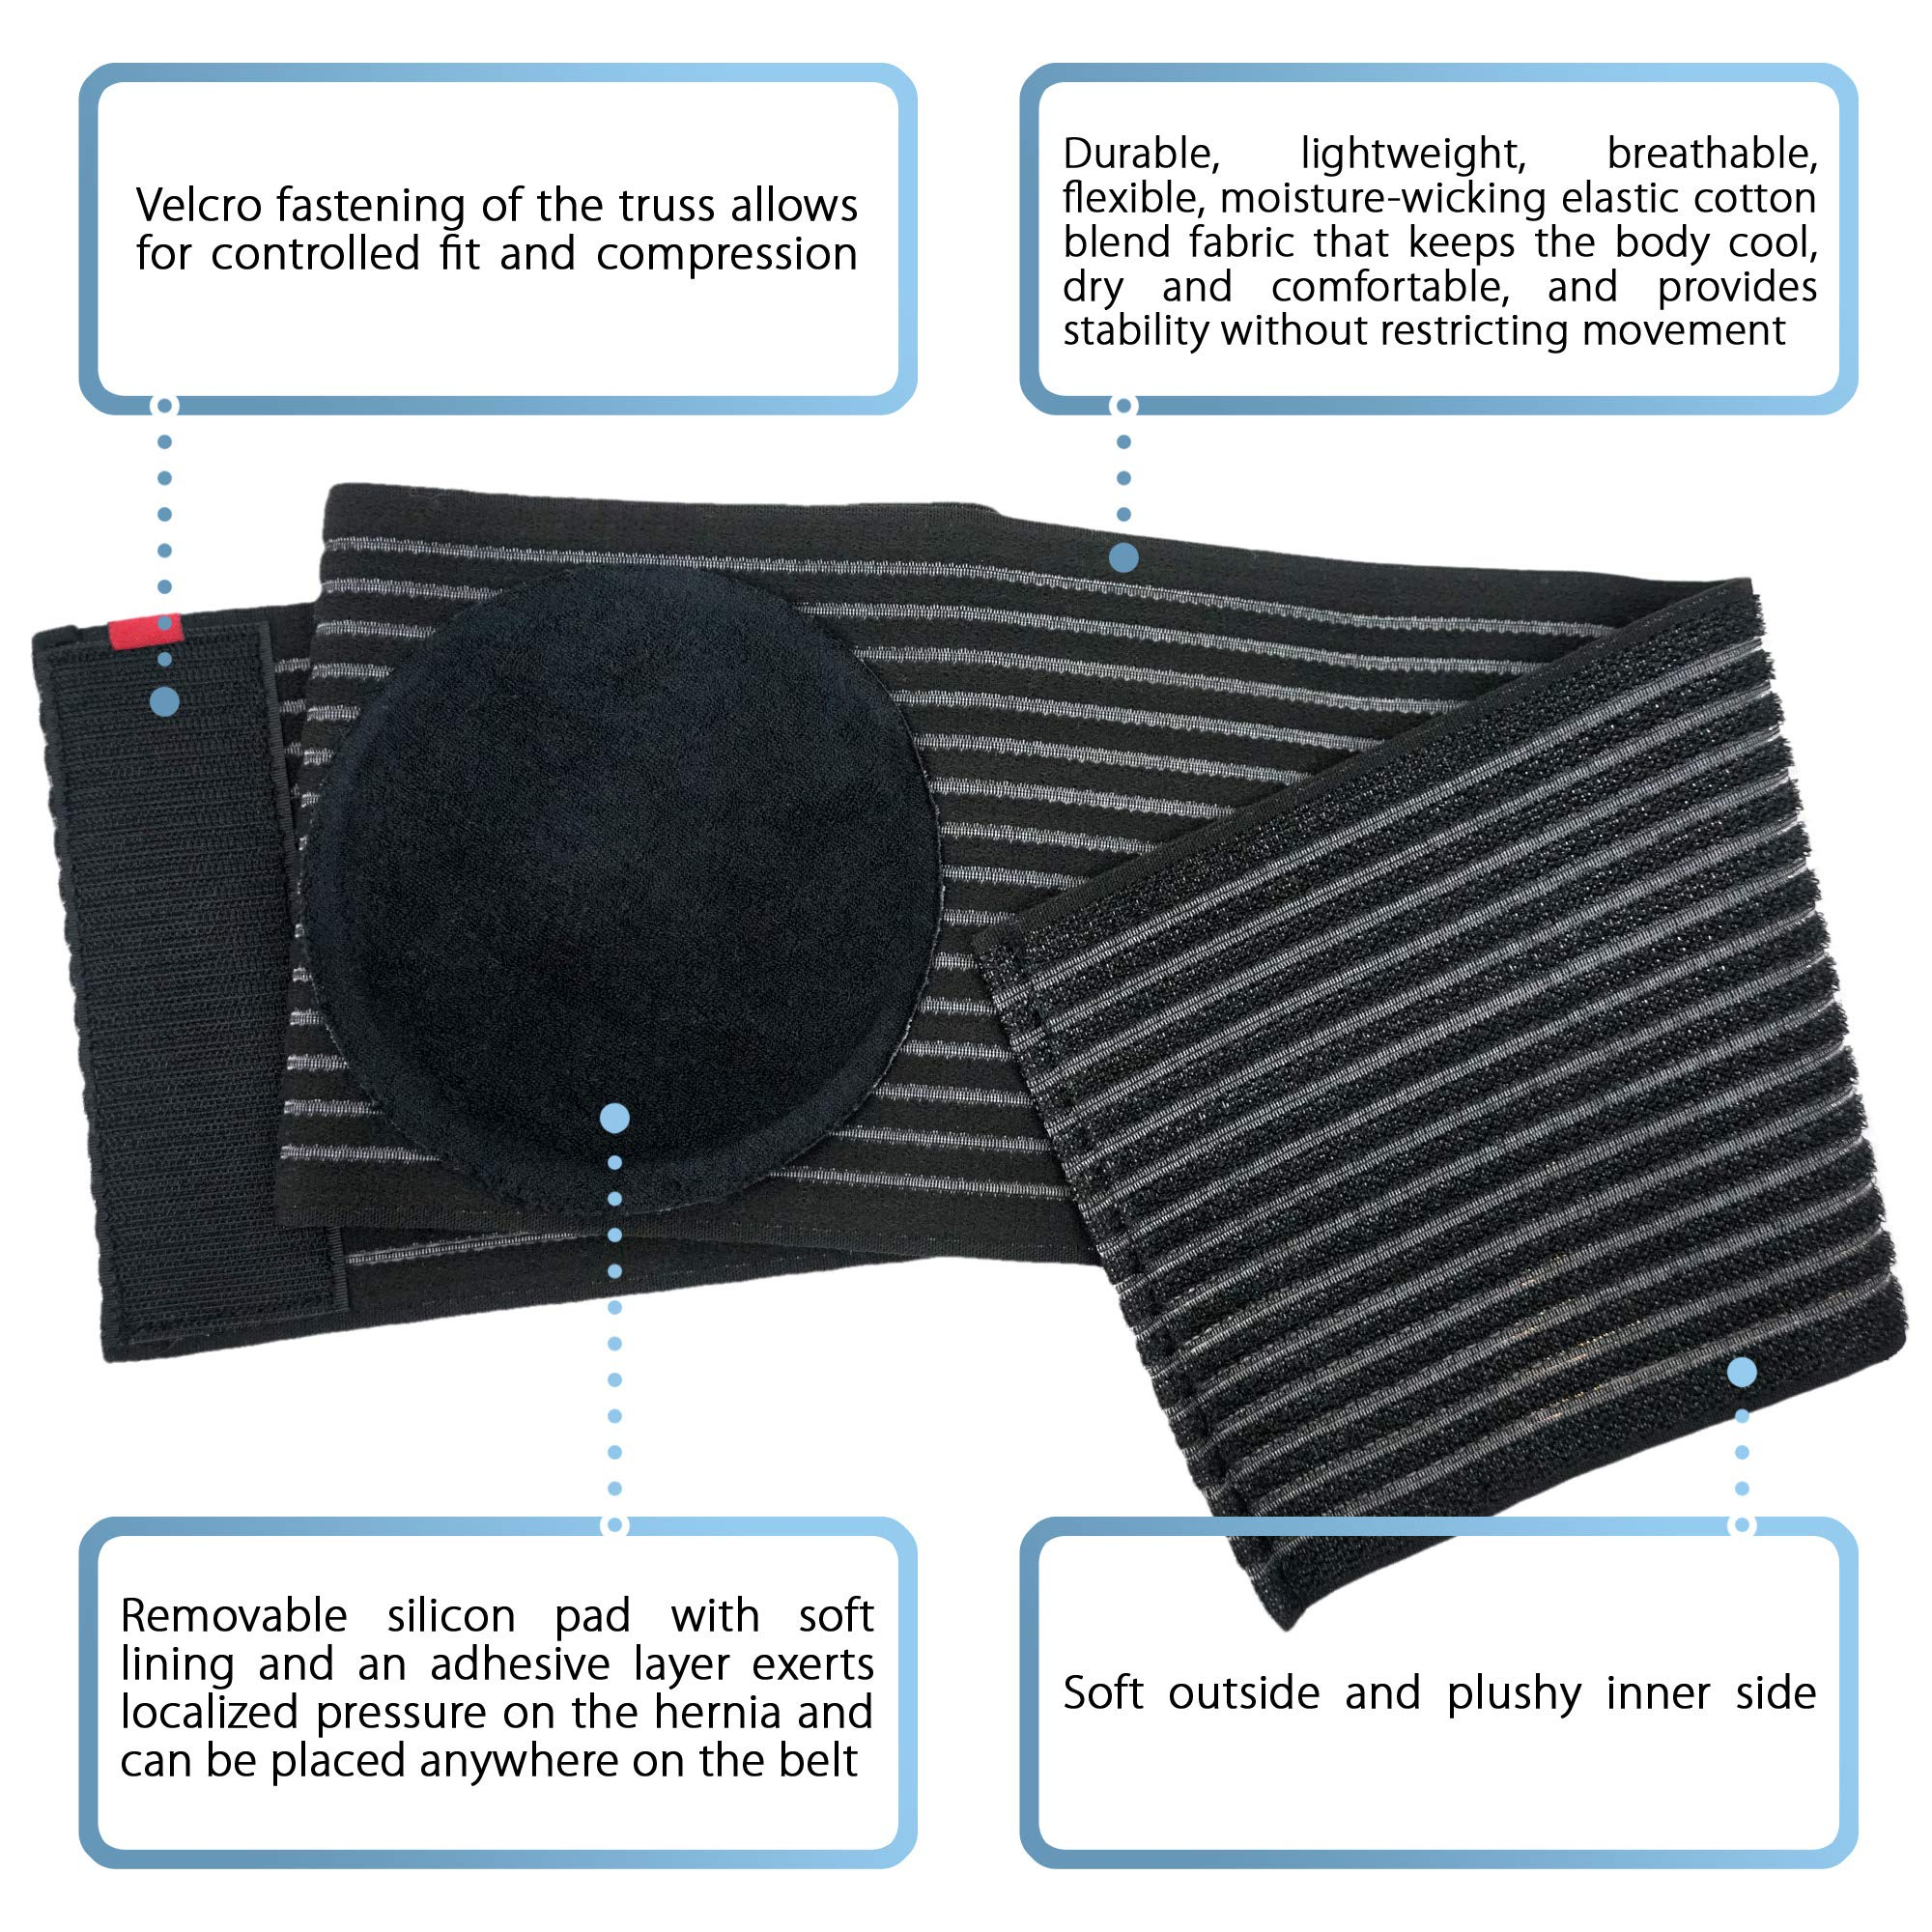 Umbilical Hernia Belt for Men and Women Abdominal Binder Hernia Support with Silicone Compression Pad Navel Ventral Epigastric Incisional and Belly Button Hernias Surgery Prevention Black OX5241-L-XXL by ORTONYX (Image #3)